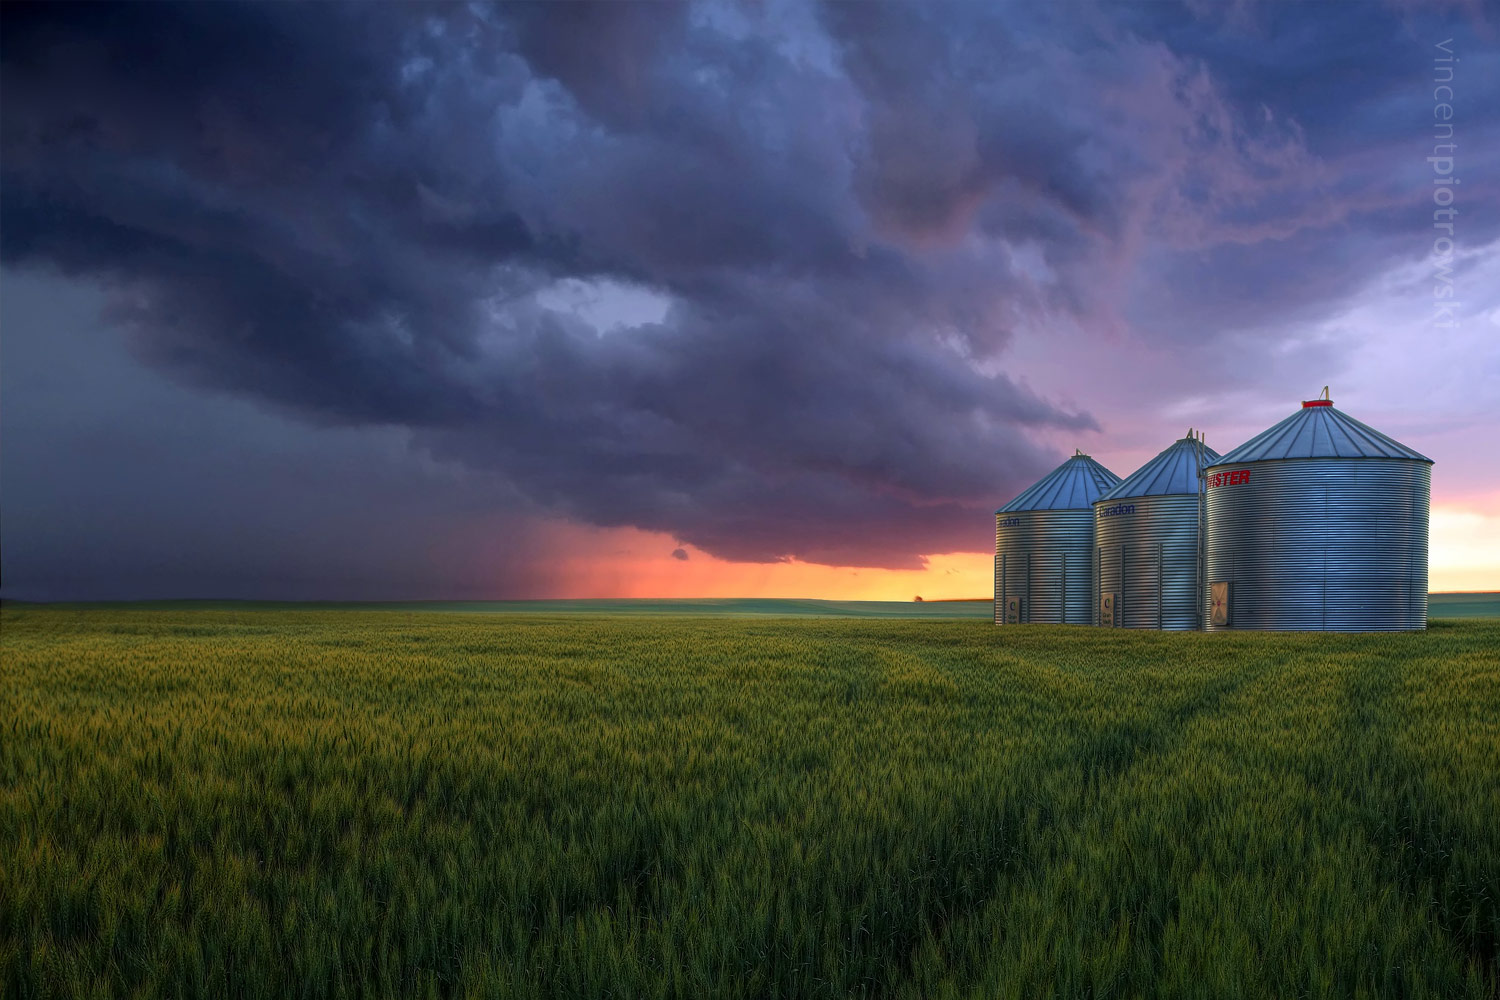 A photograph of metal grain silos taken near Drumheller Alberta with dark storm clouds on the horizon and the sun peaking through